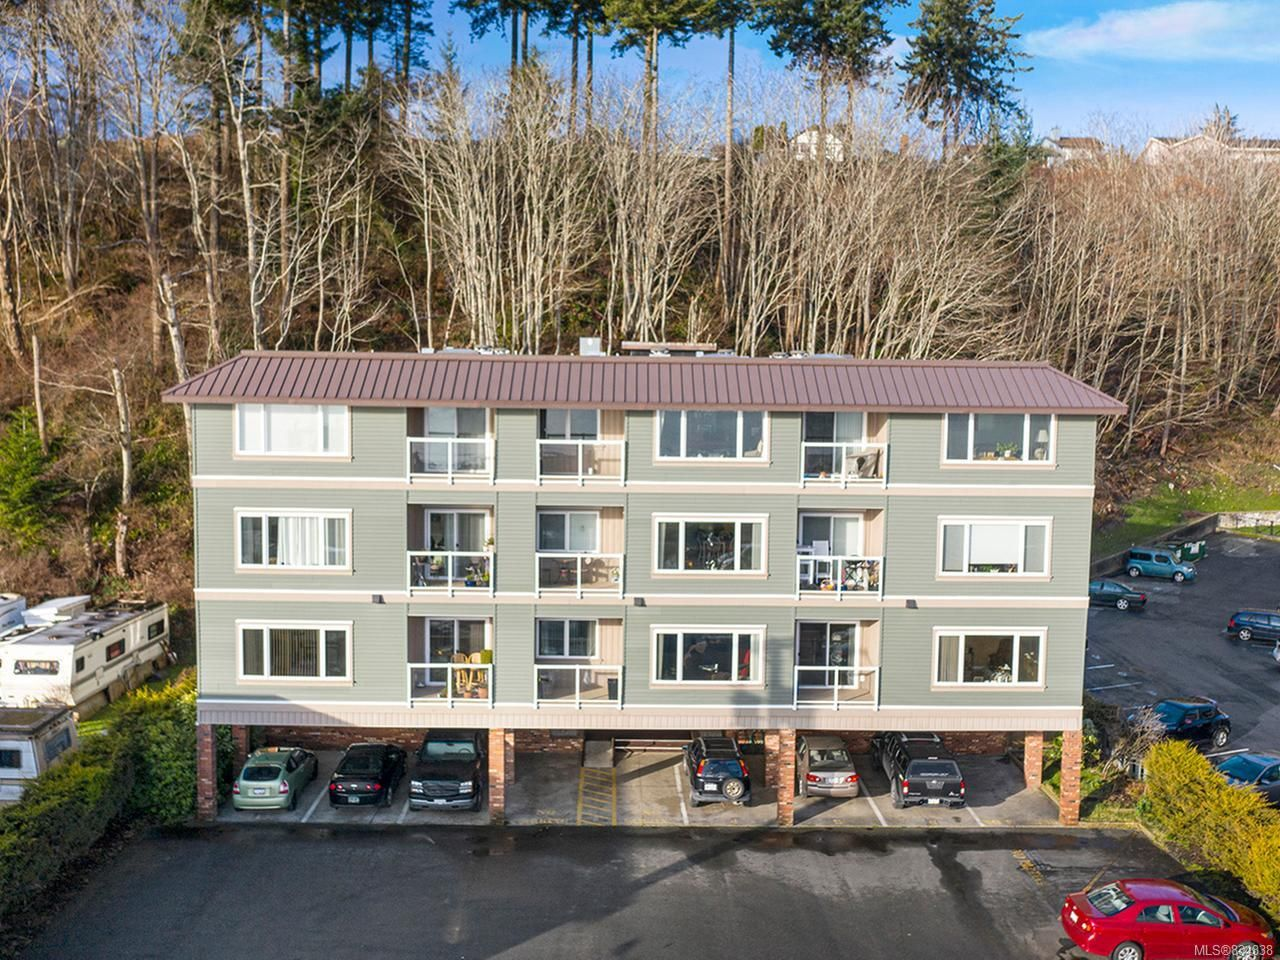 Photo 21: Photos: 301 894 S Island Hwy in CAMPBELL RIVER: CR Campbell River Central Condo for sale (Campbell River)  : MLS®# 834838